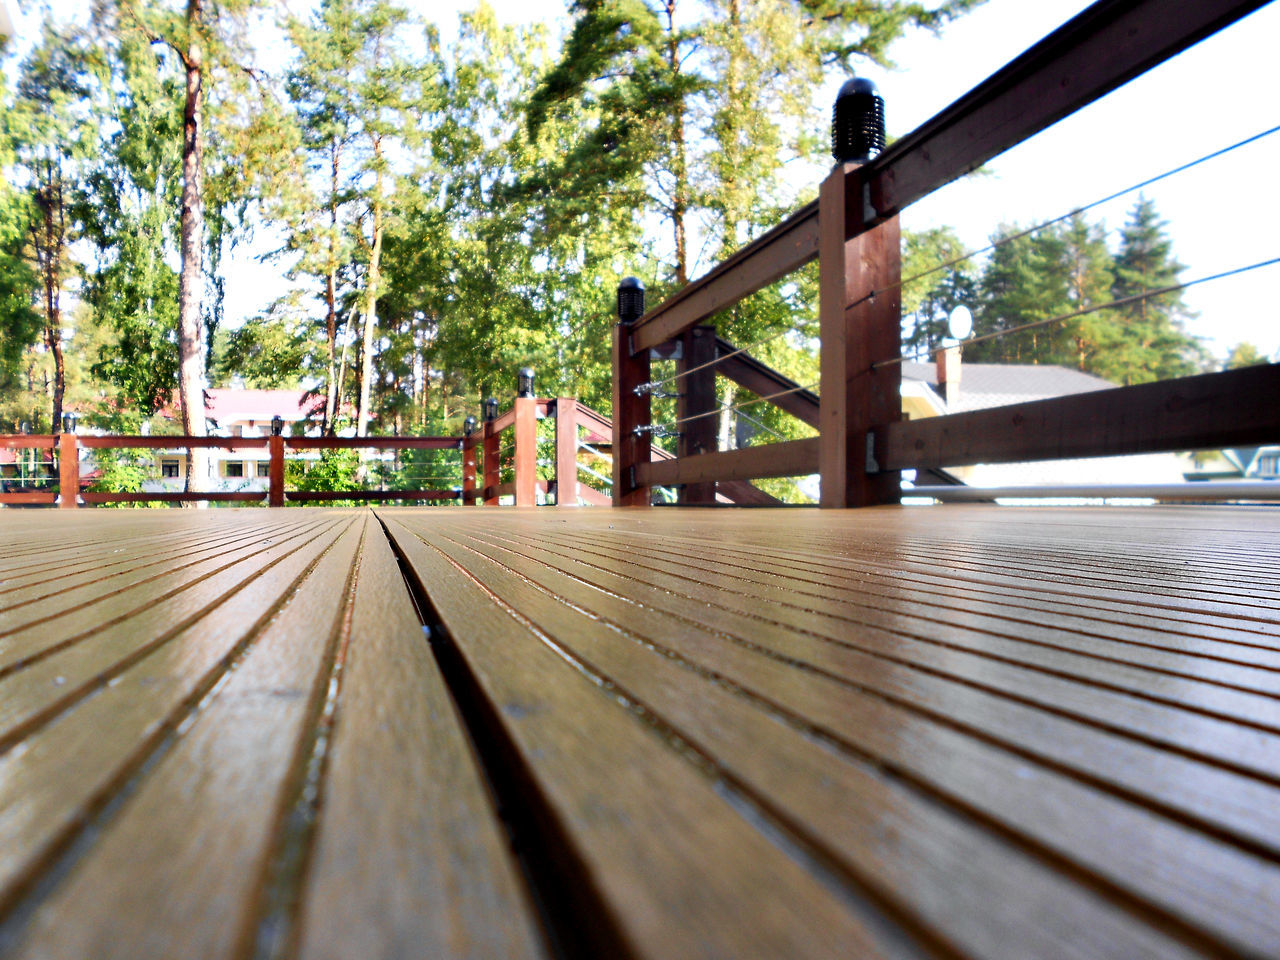 Close-up Day Footbridge Nature No People Outdoors Railing Tree Wood - Material Wood Paneling